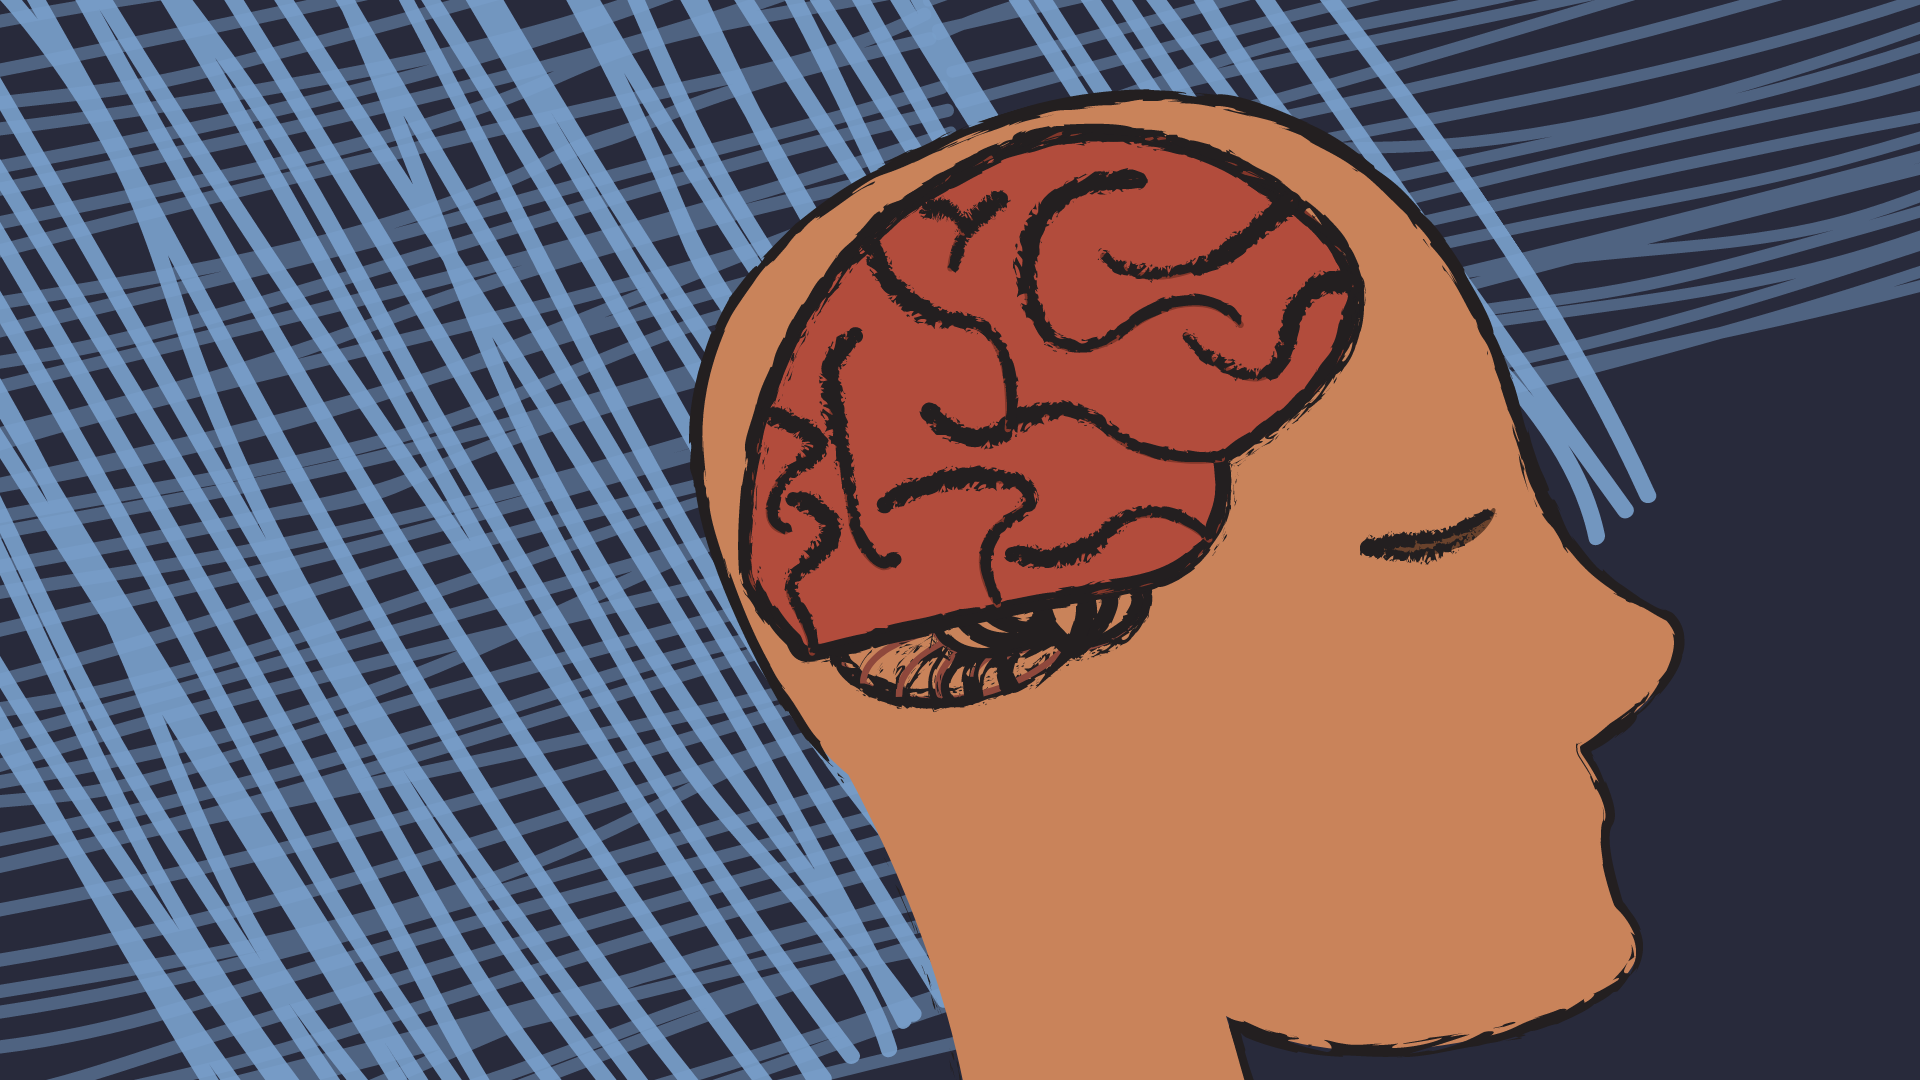 Simple line drawing of a brain inside of a head. Background is blue with light blue lines.